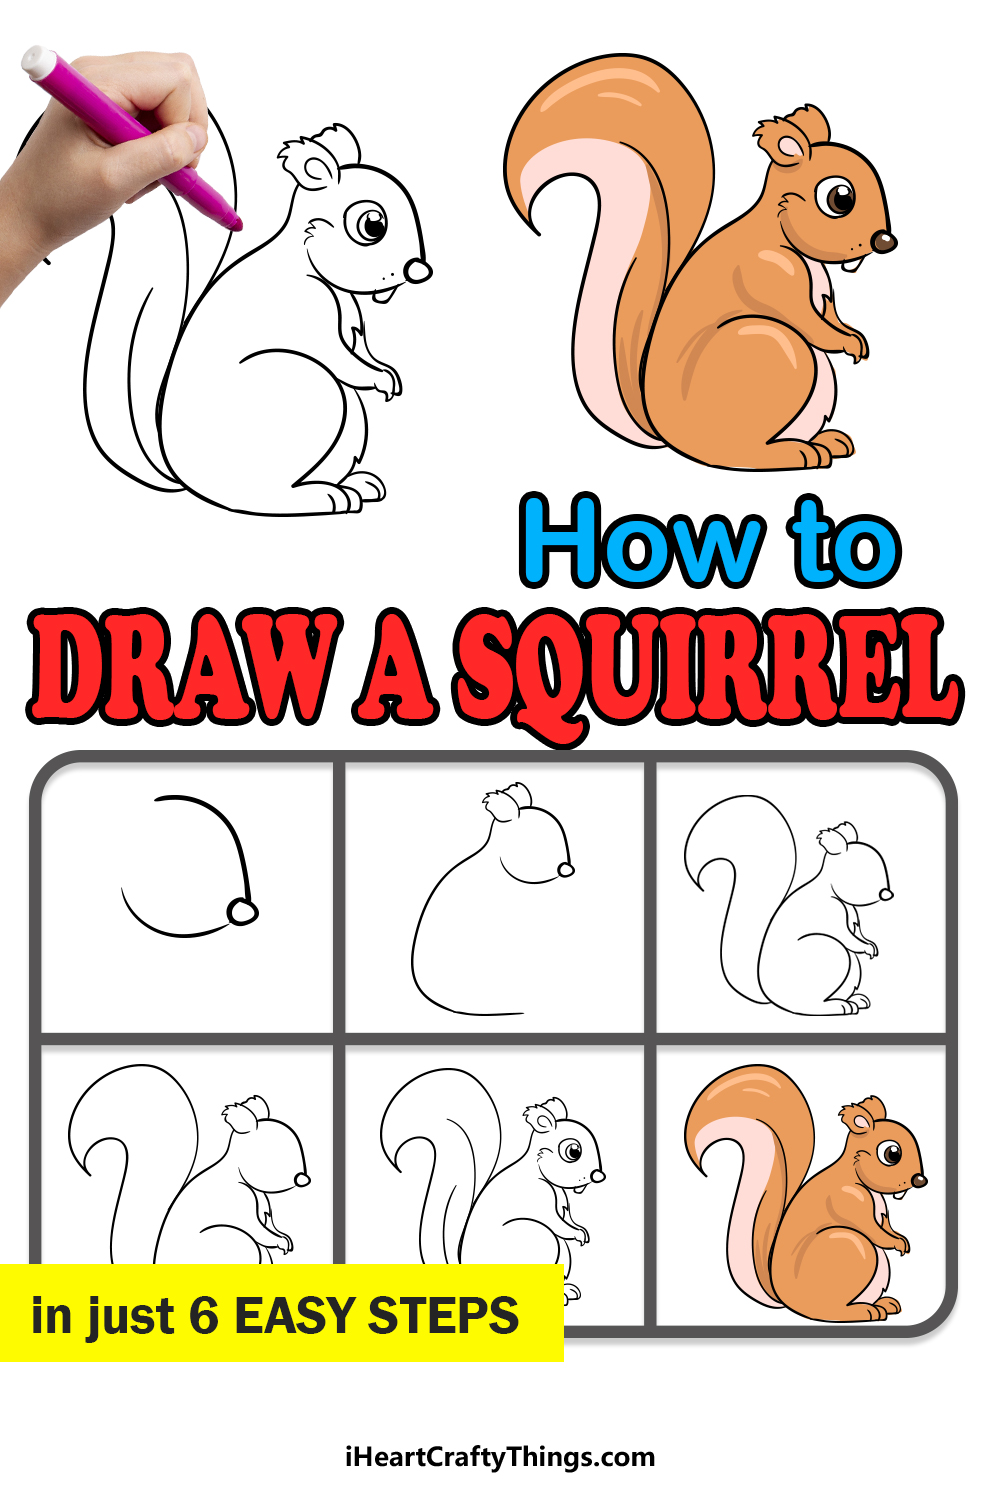 how to draw a squirrel in 6 easy steps